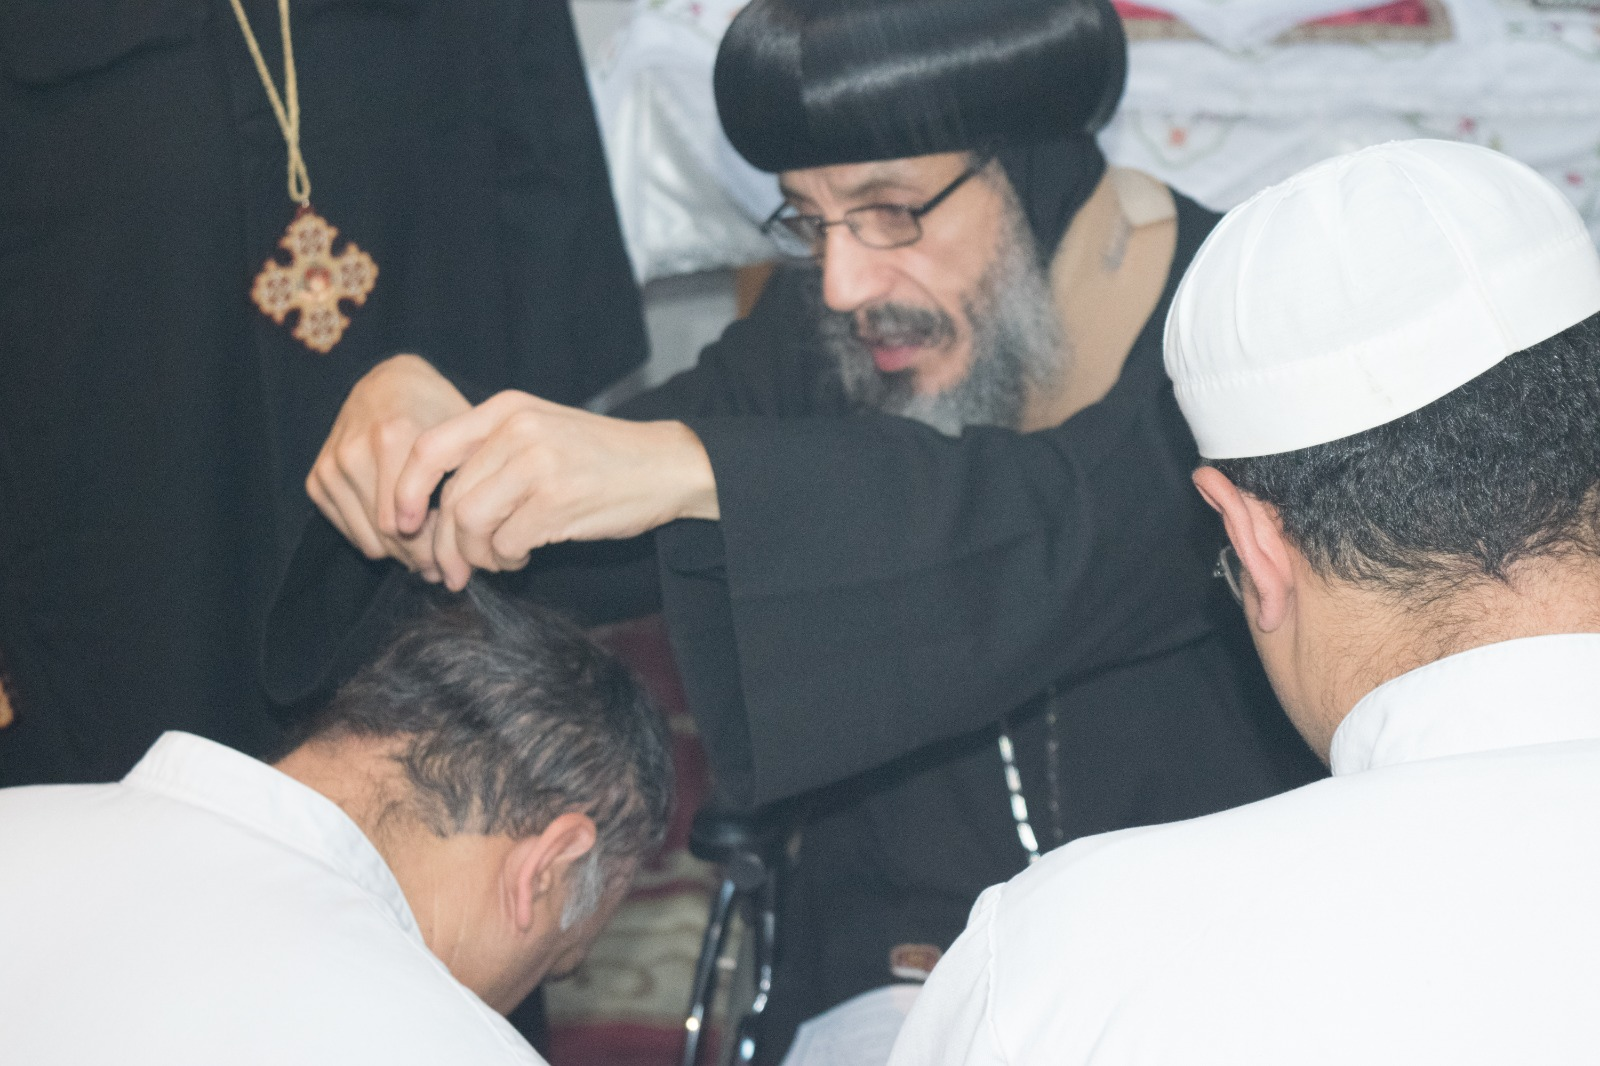 The-ordination-of-two-monks-at-St-Athanasius-Monastery012